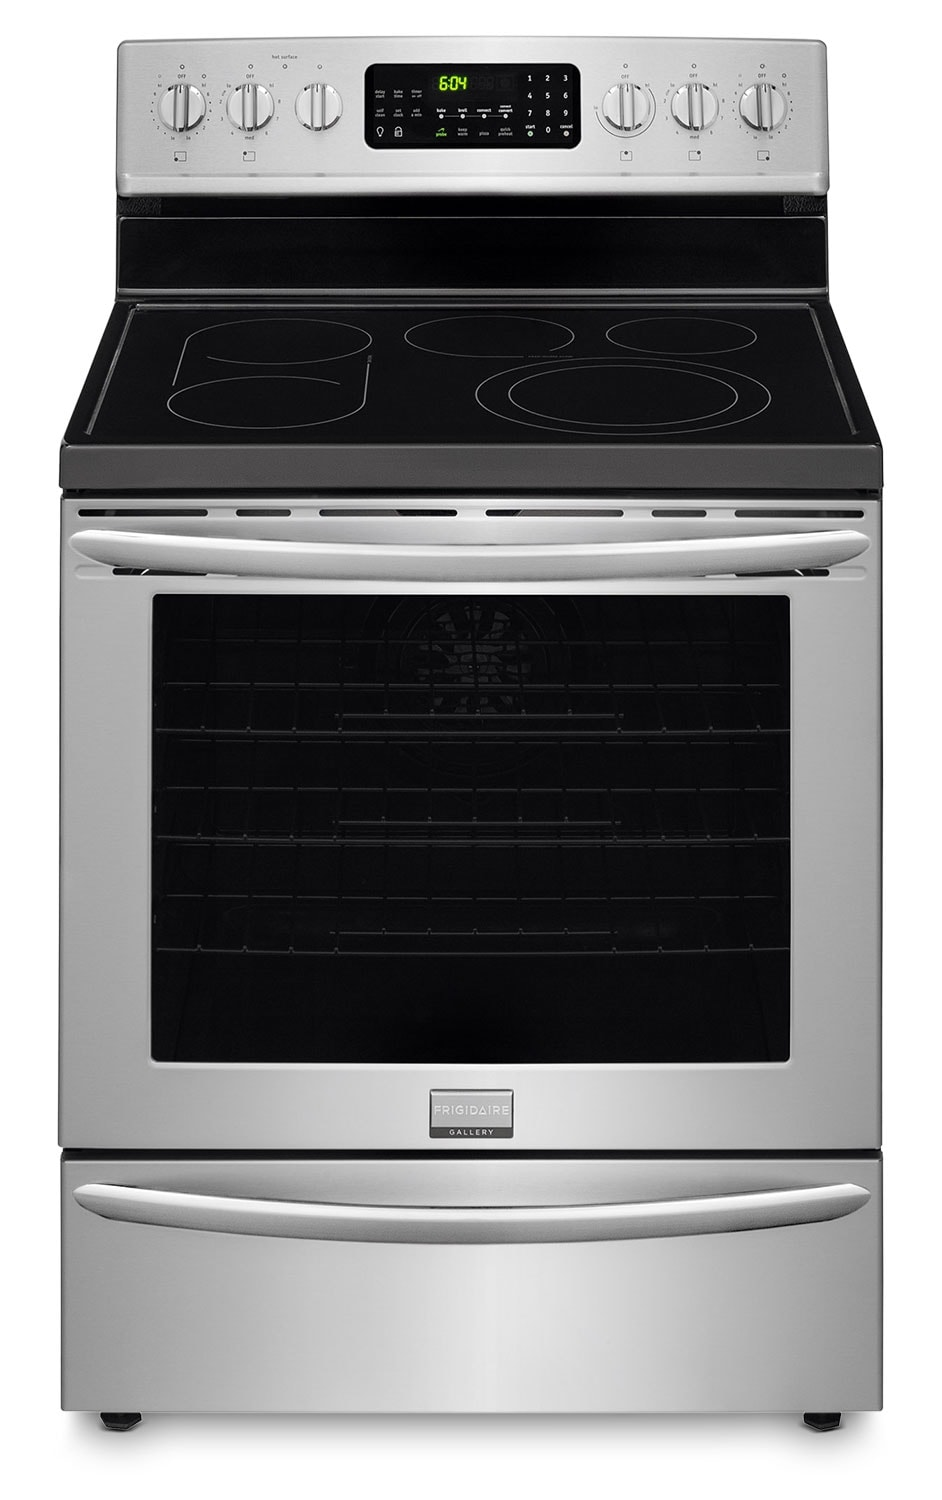 Frigidaire Gallery Stainless Steel Freestanding Electric Convection Range (5.8 Cu. Ft.) - CGEF3059RF